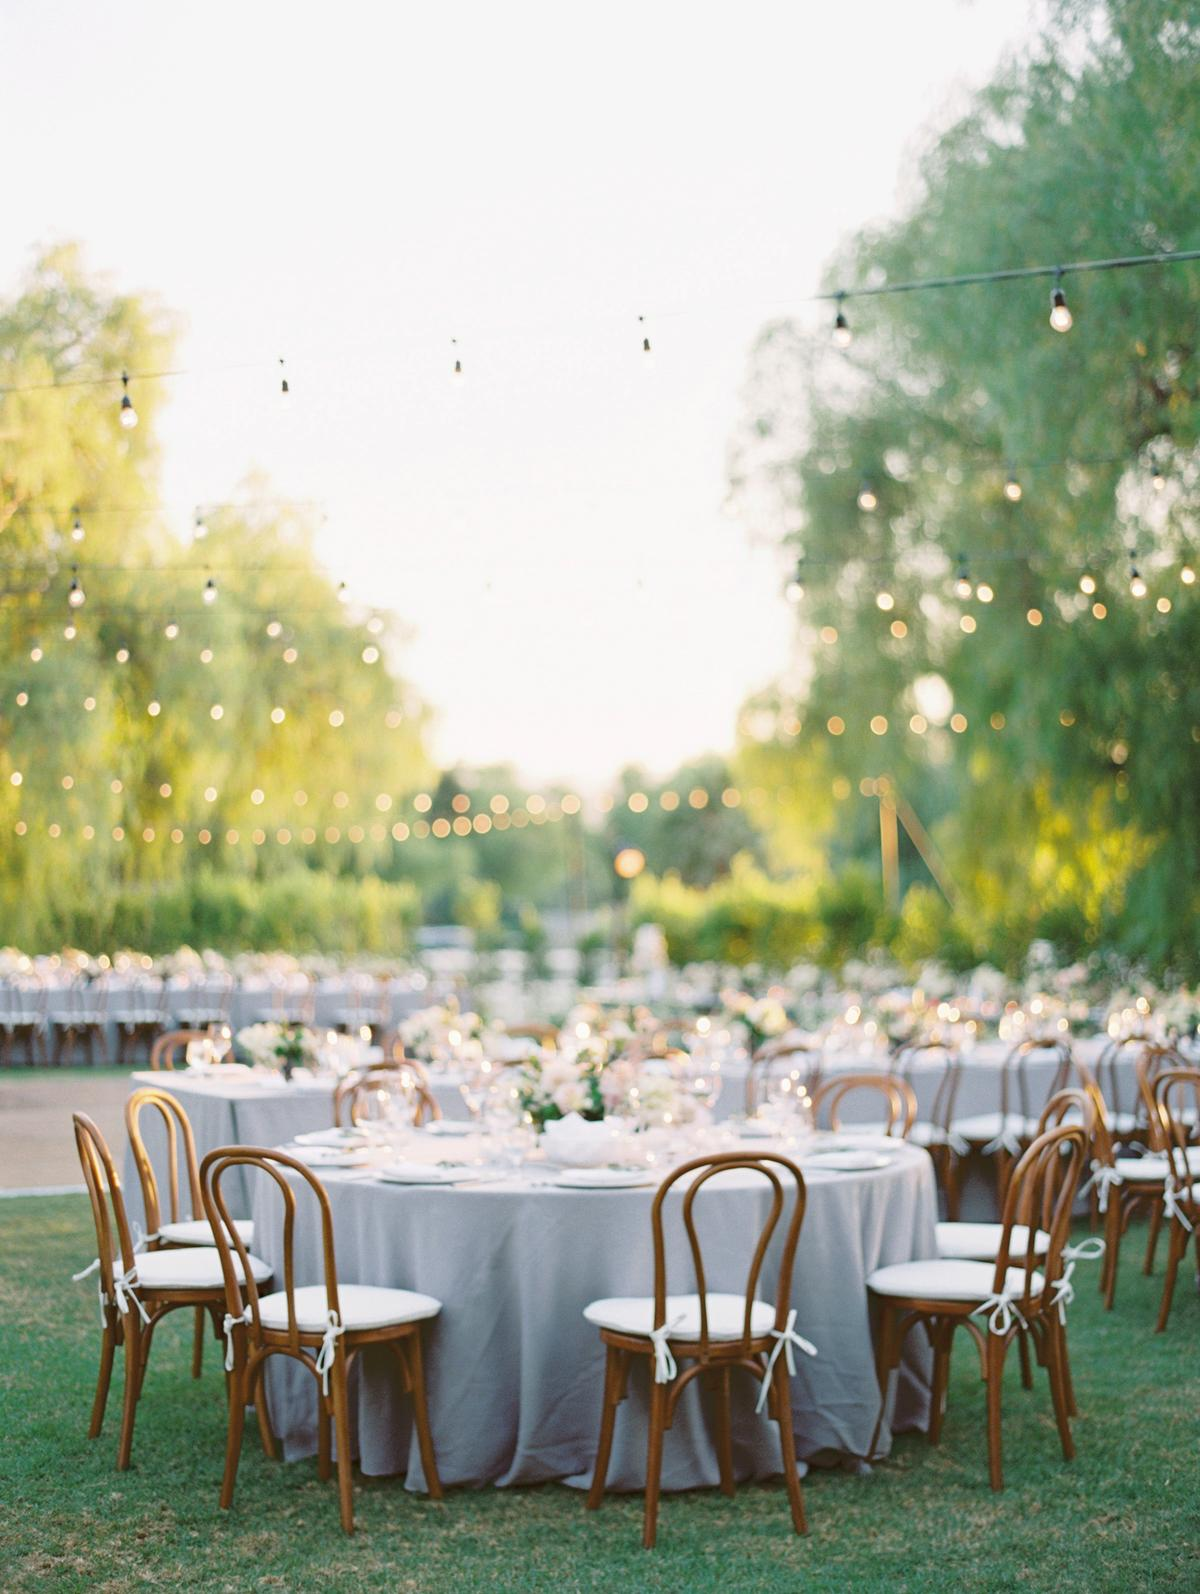 Wedding tables with flowers